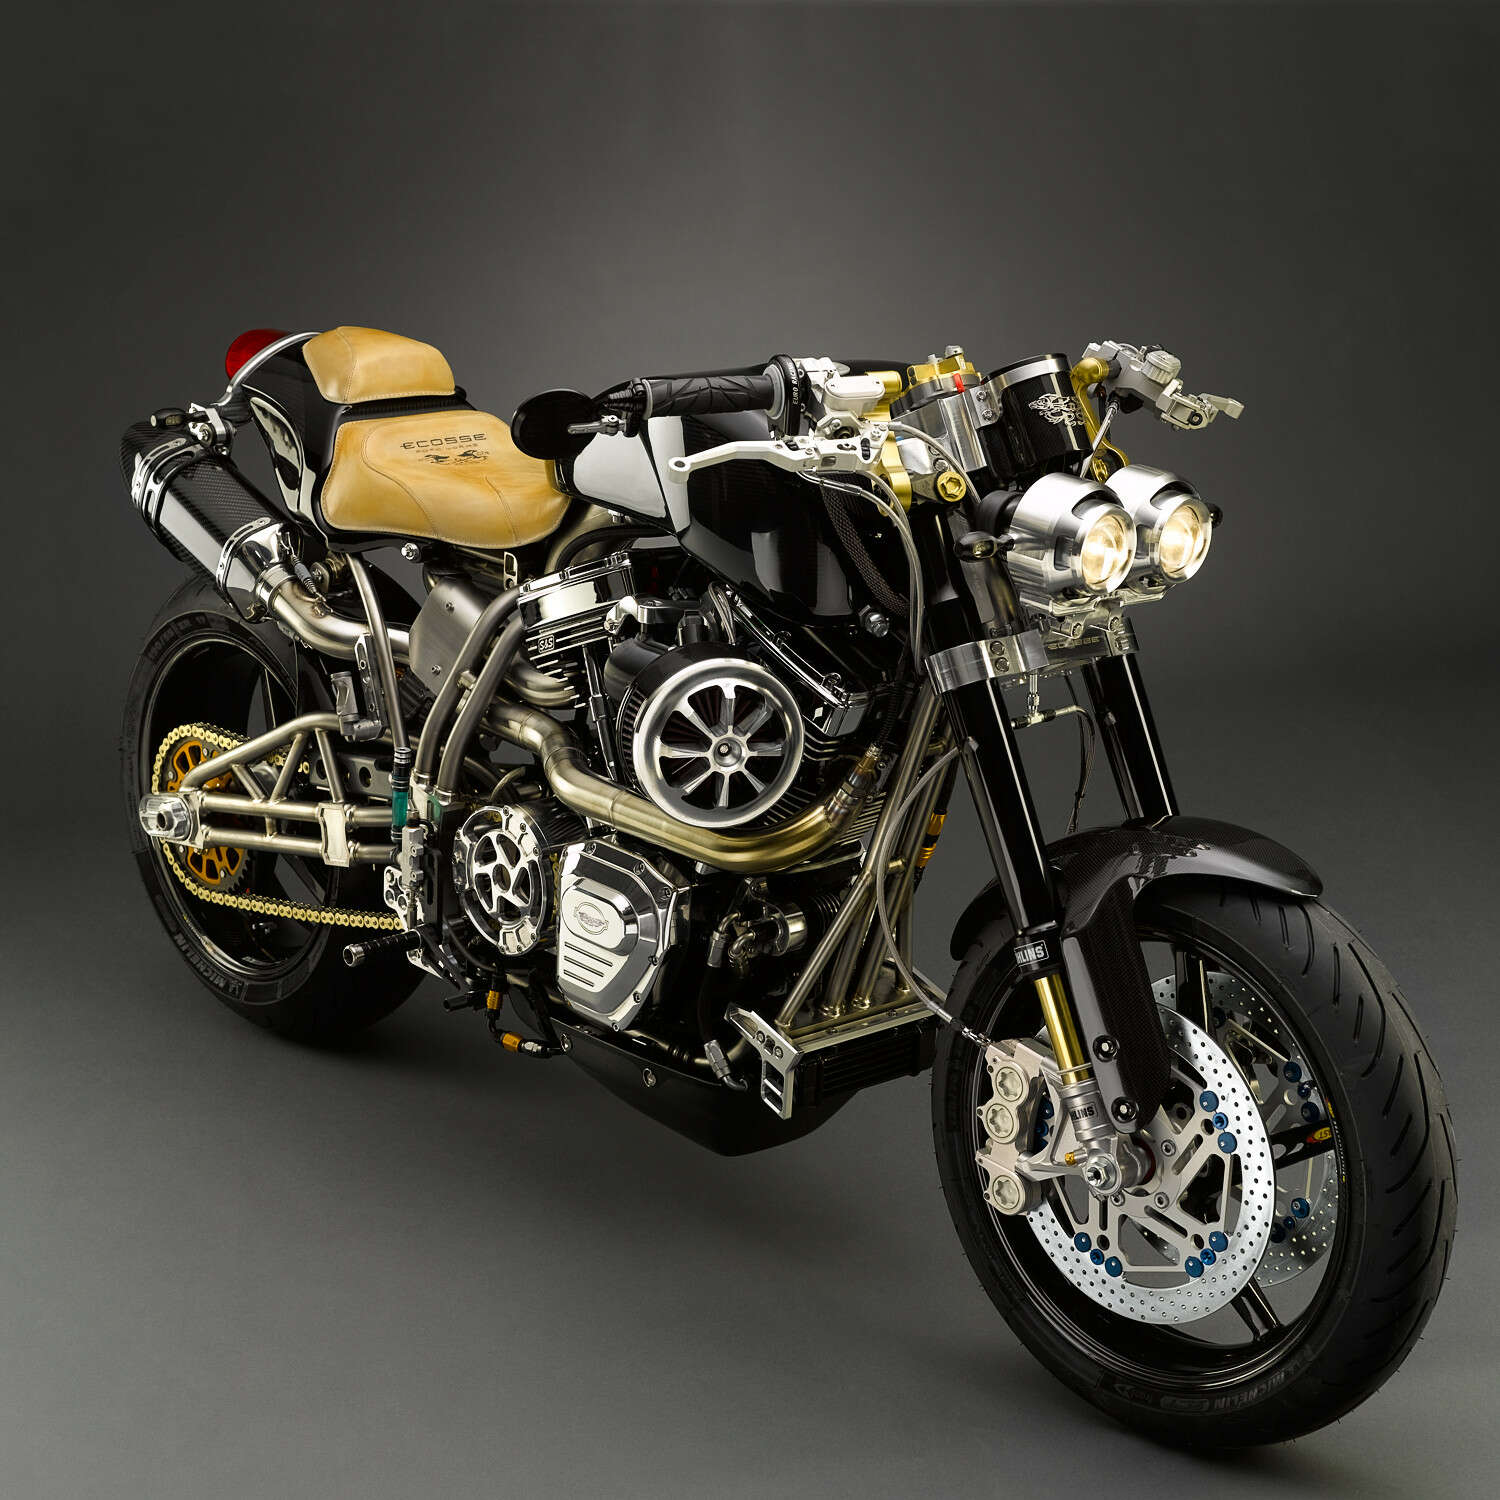 25 Most Expensive New Motorcycles In The World – Fancy A Ride